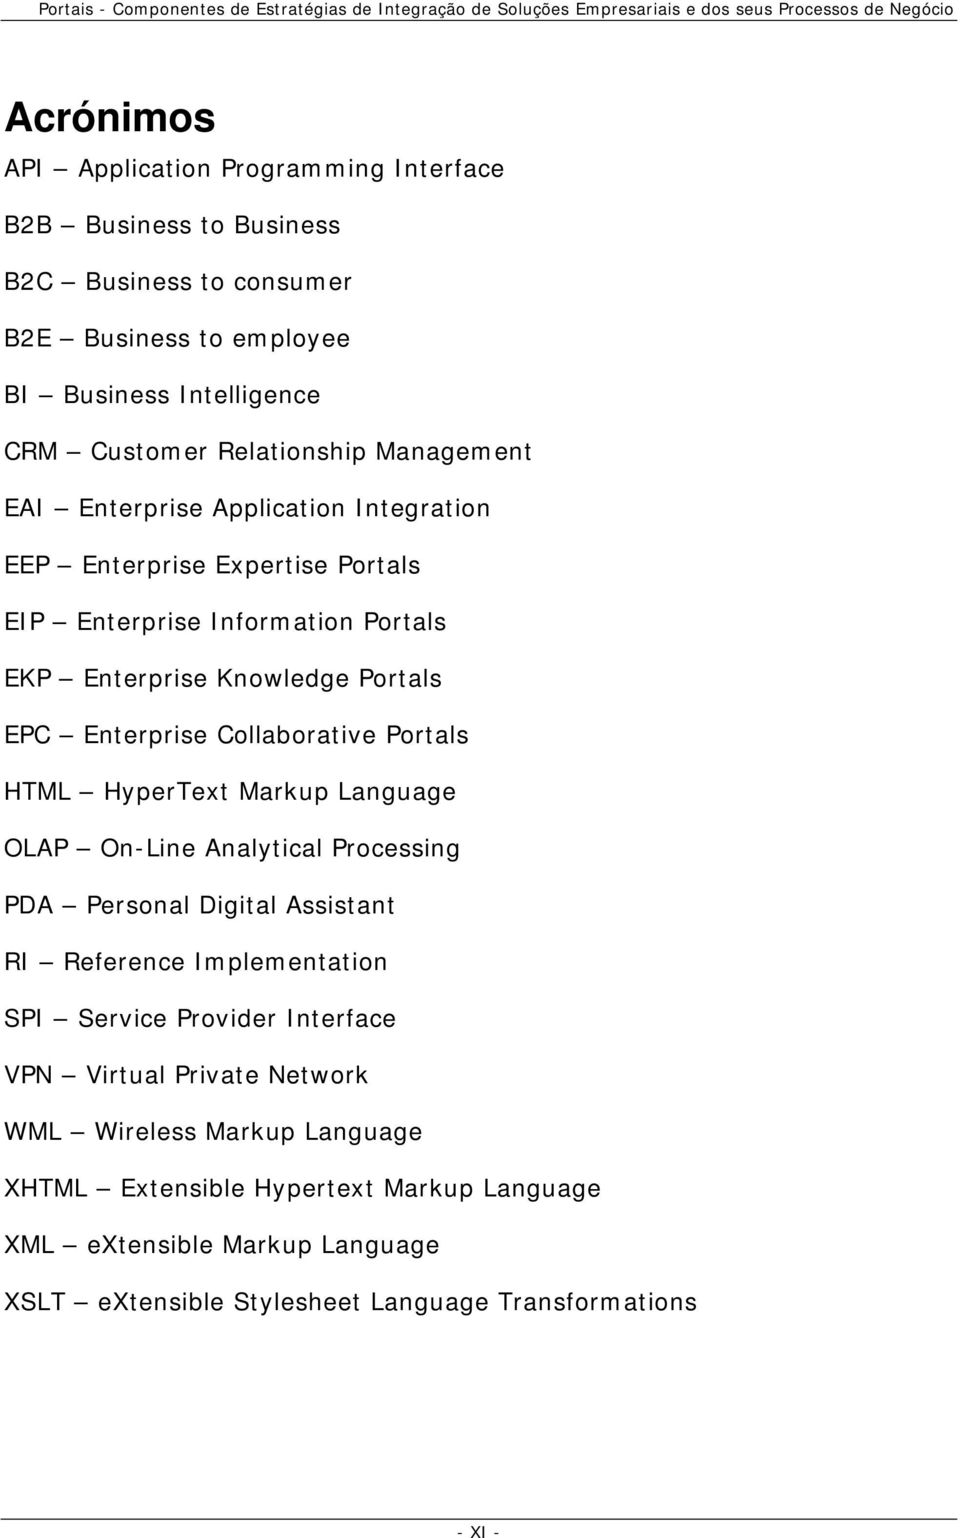 Portals EKP Enterprise Knowledge Portals EPC Enterprise Collaborative Portals HTML HyperText Markup Language OLAP On-Line Analytical Processing PDA Personal Digital Assistant RI Reference